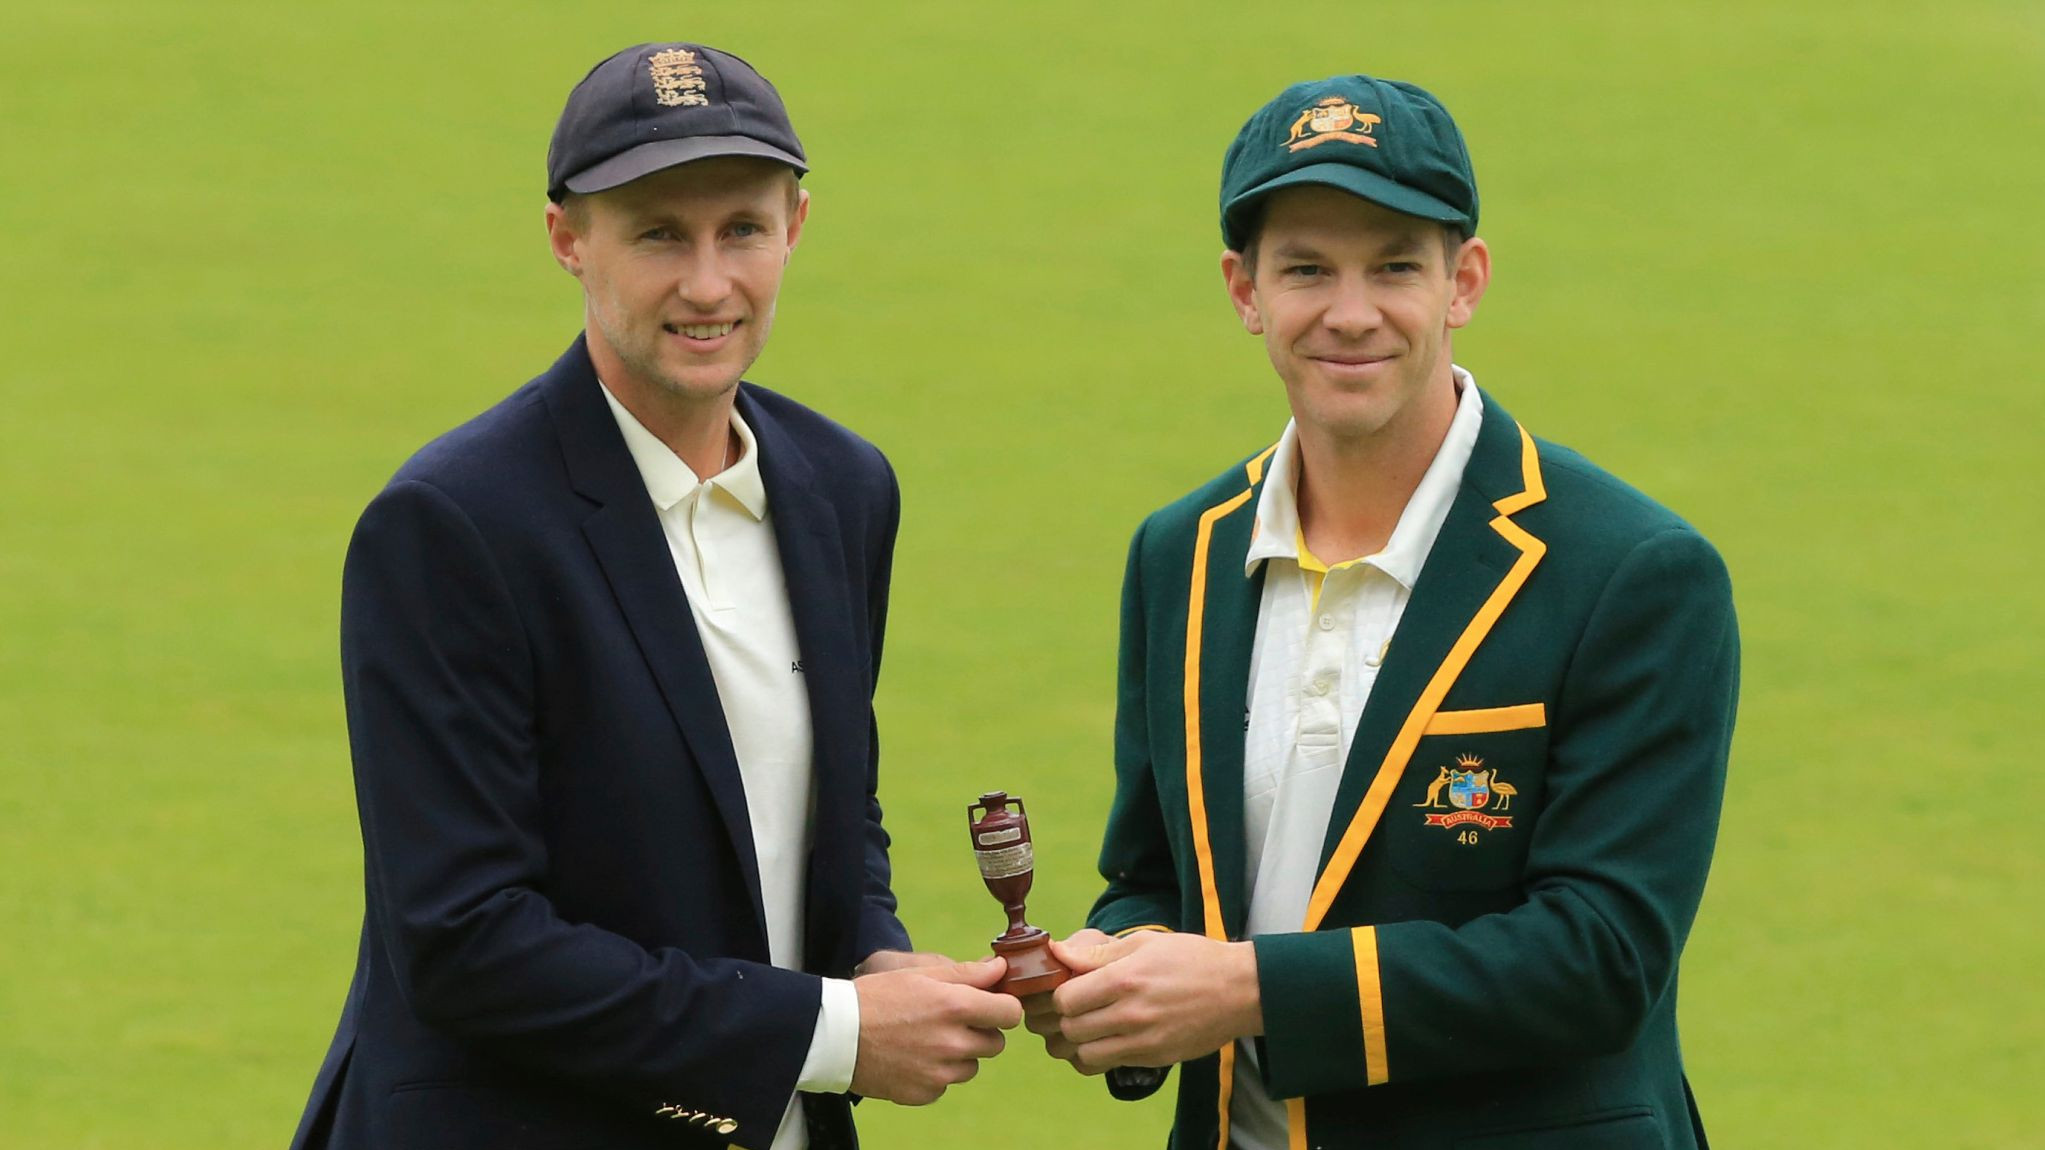 Cricket Australia optimistic of hosting Ashes 2021-22 as scheduled with crowds in attendance- Nick Hockley